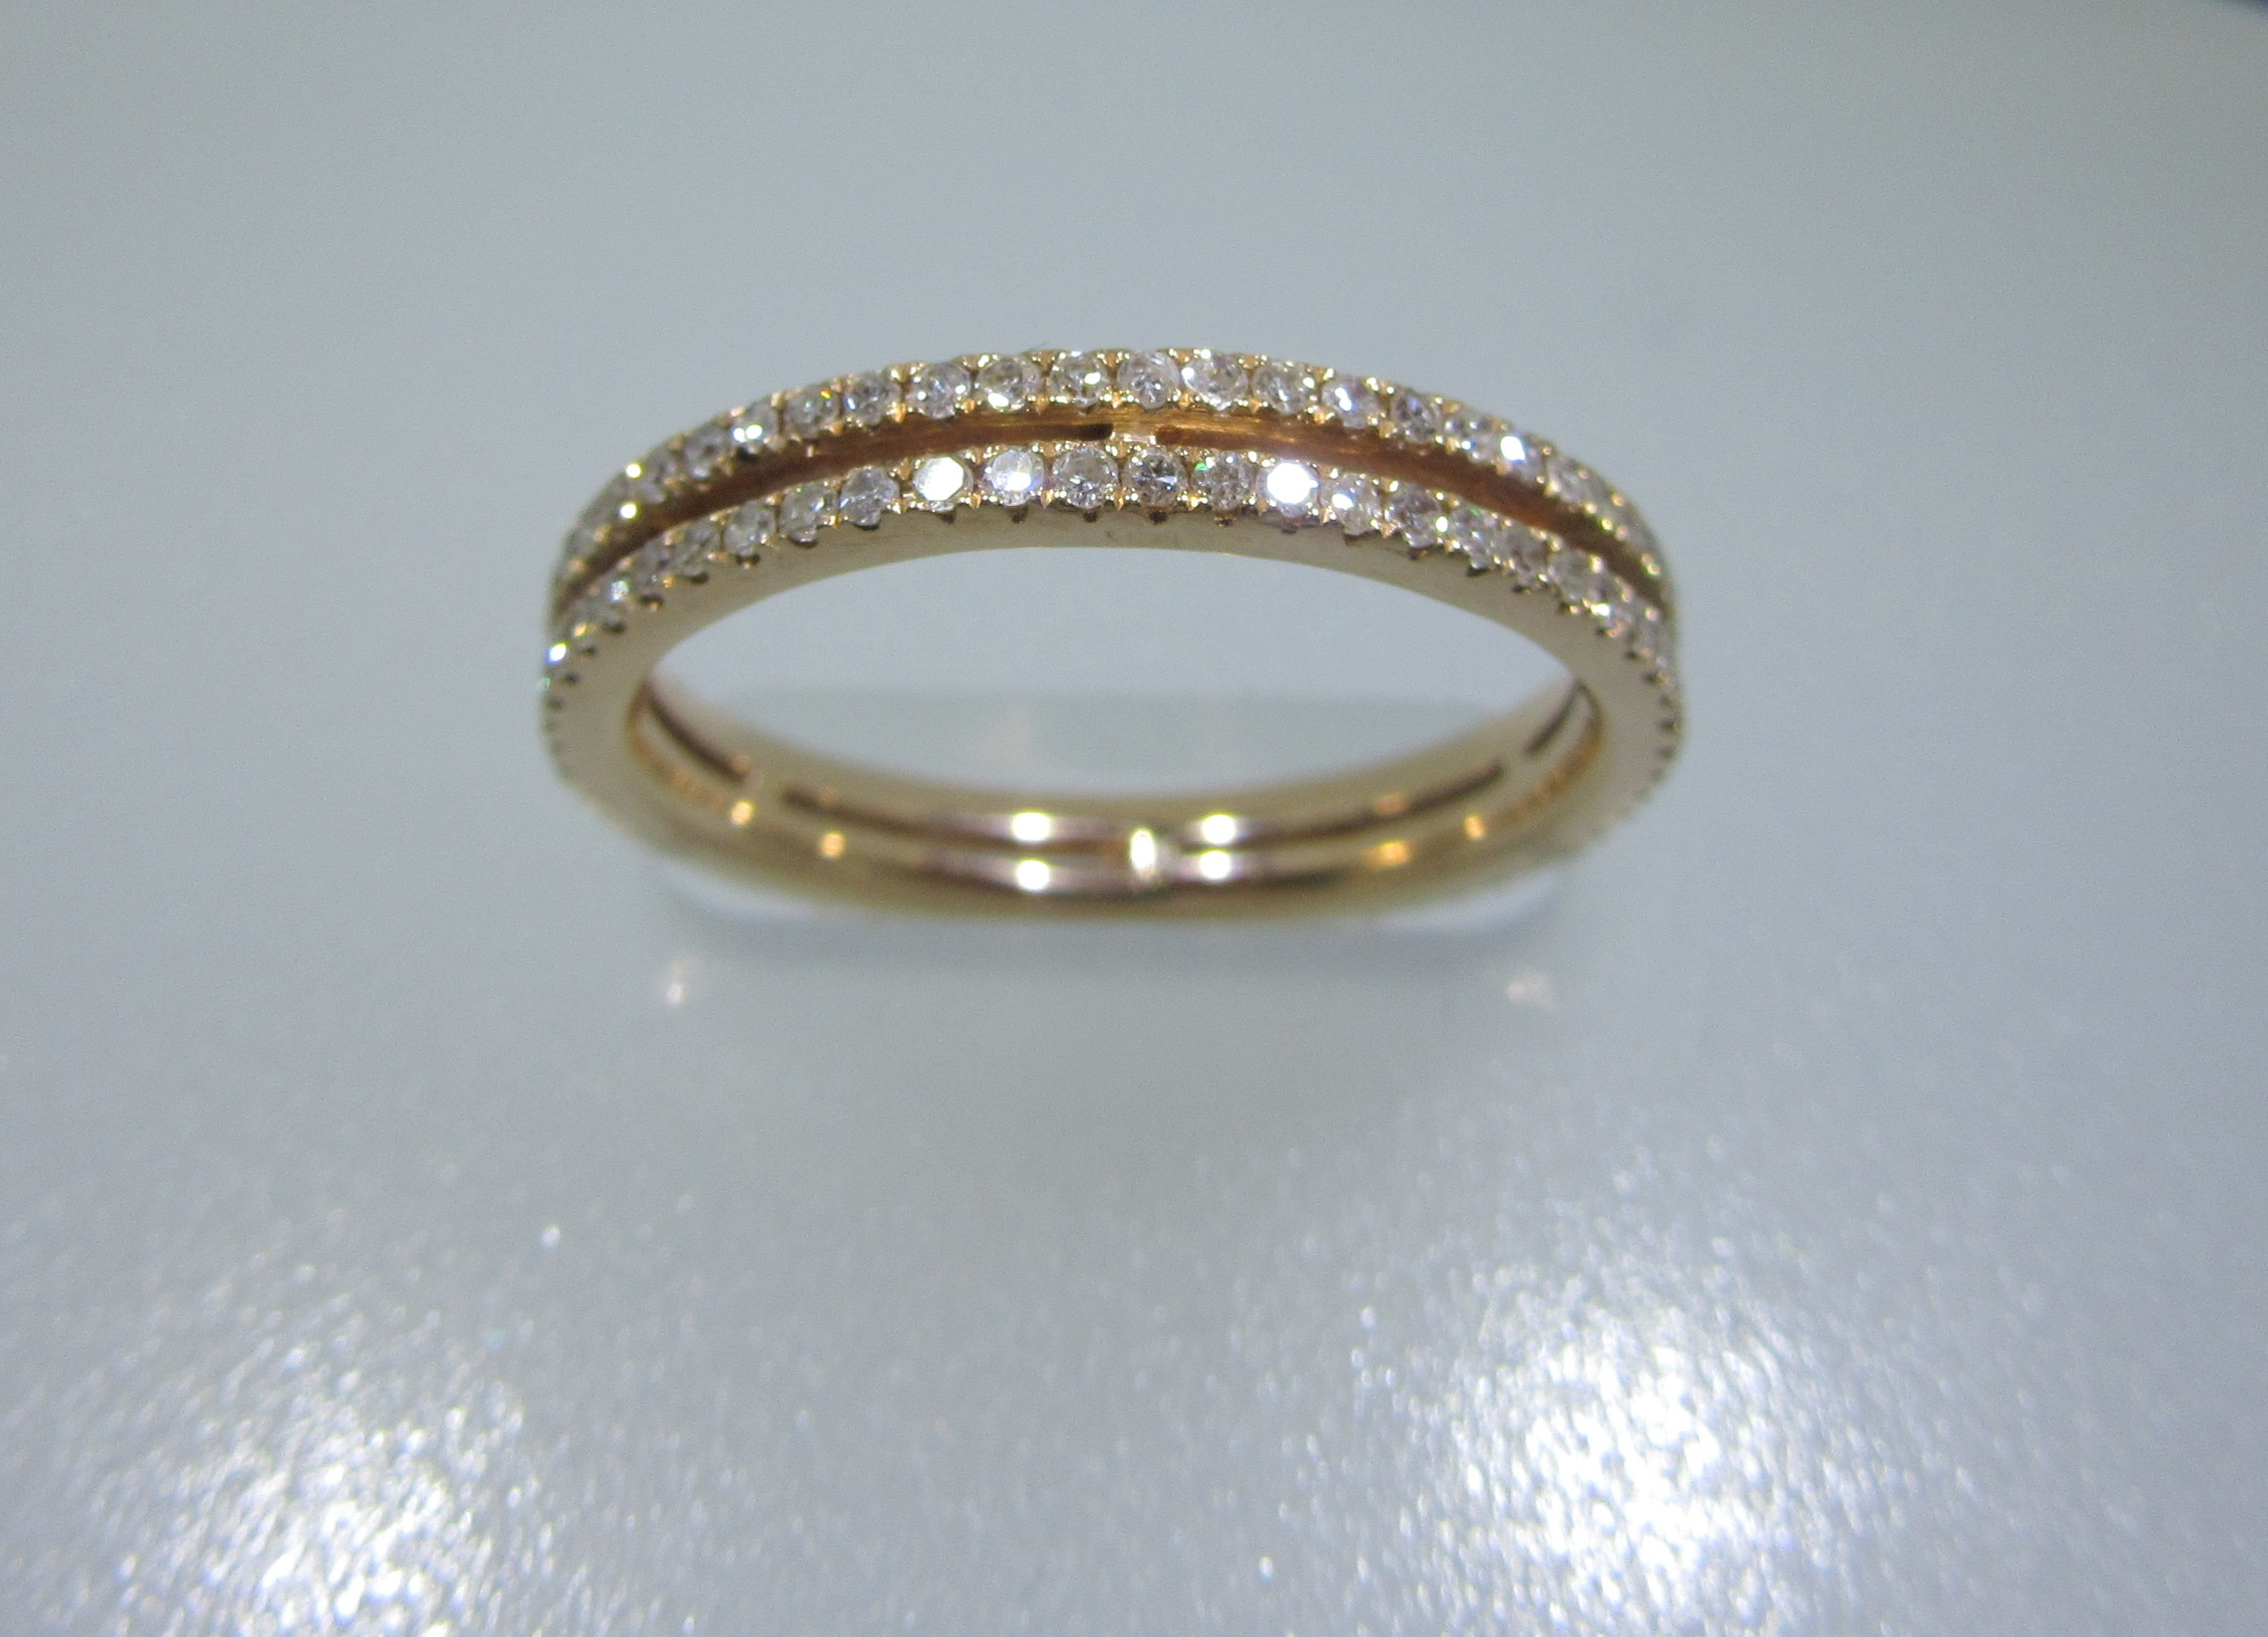 jewelry pave products r sugden handmade usa san band eternity ca pav fine diamond in ring bands tura francisco